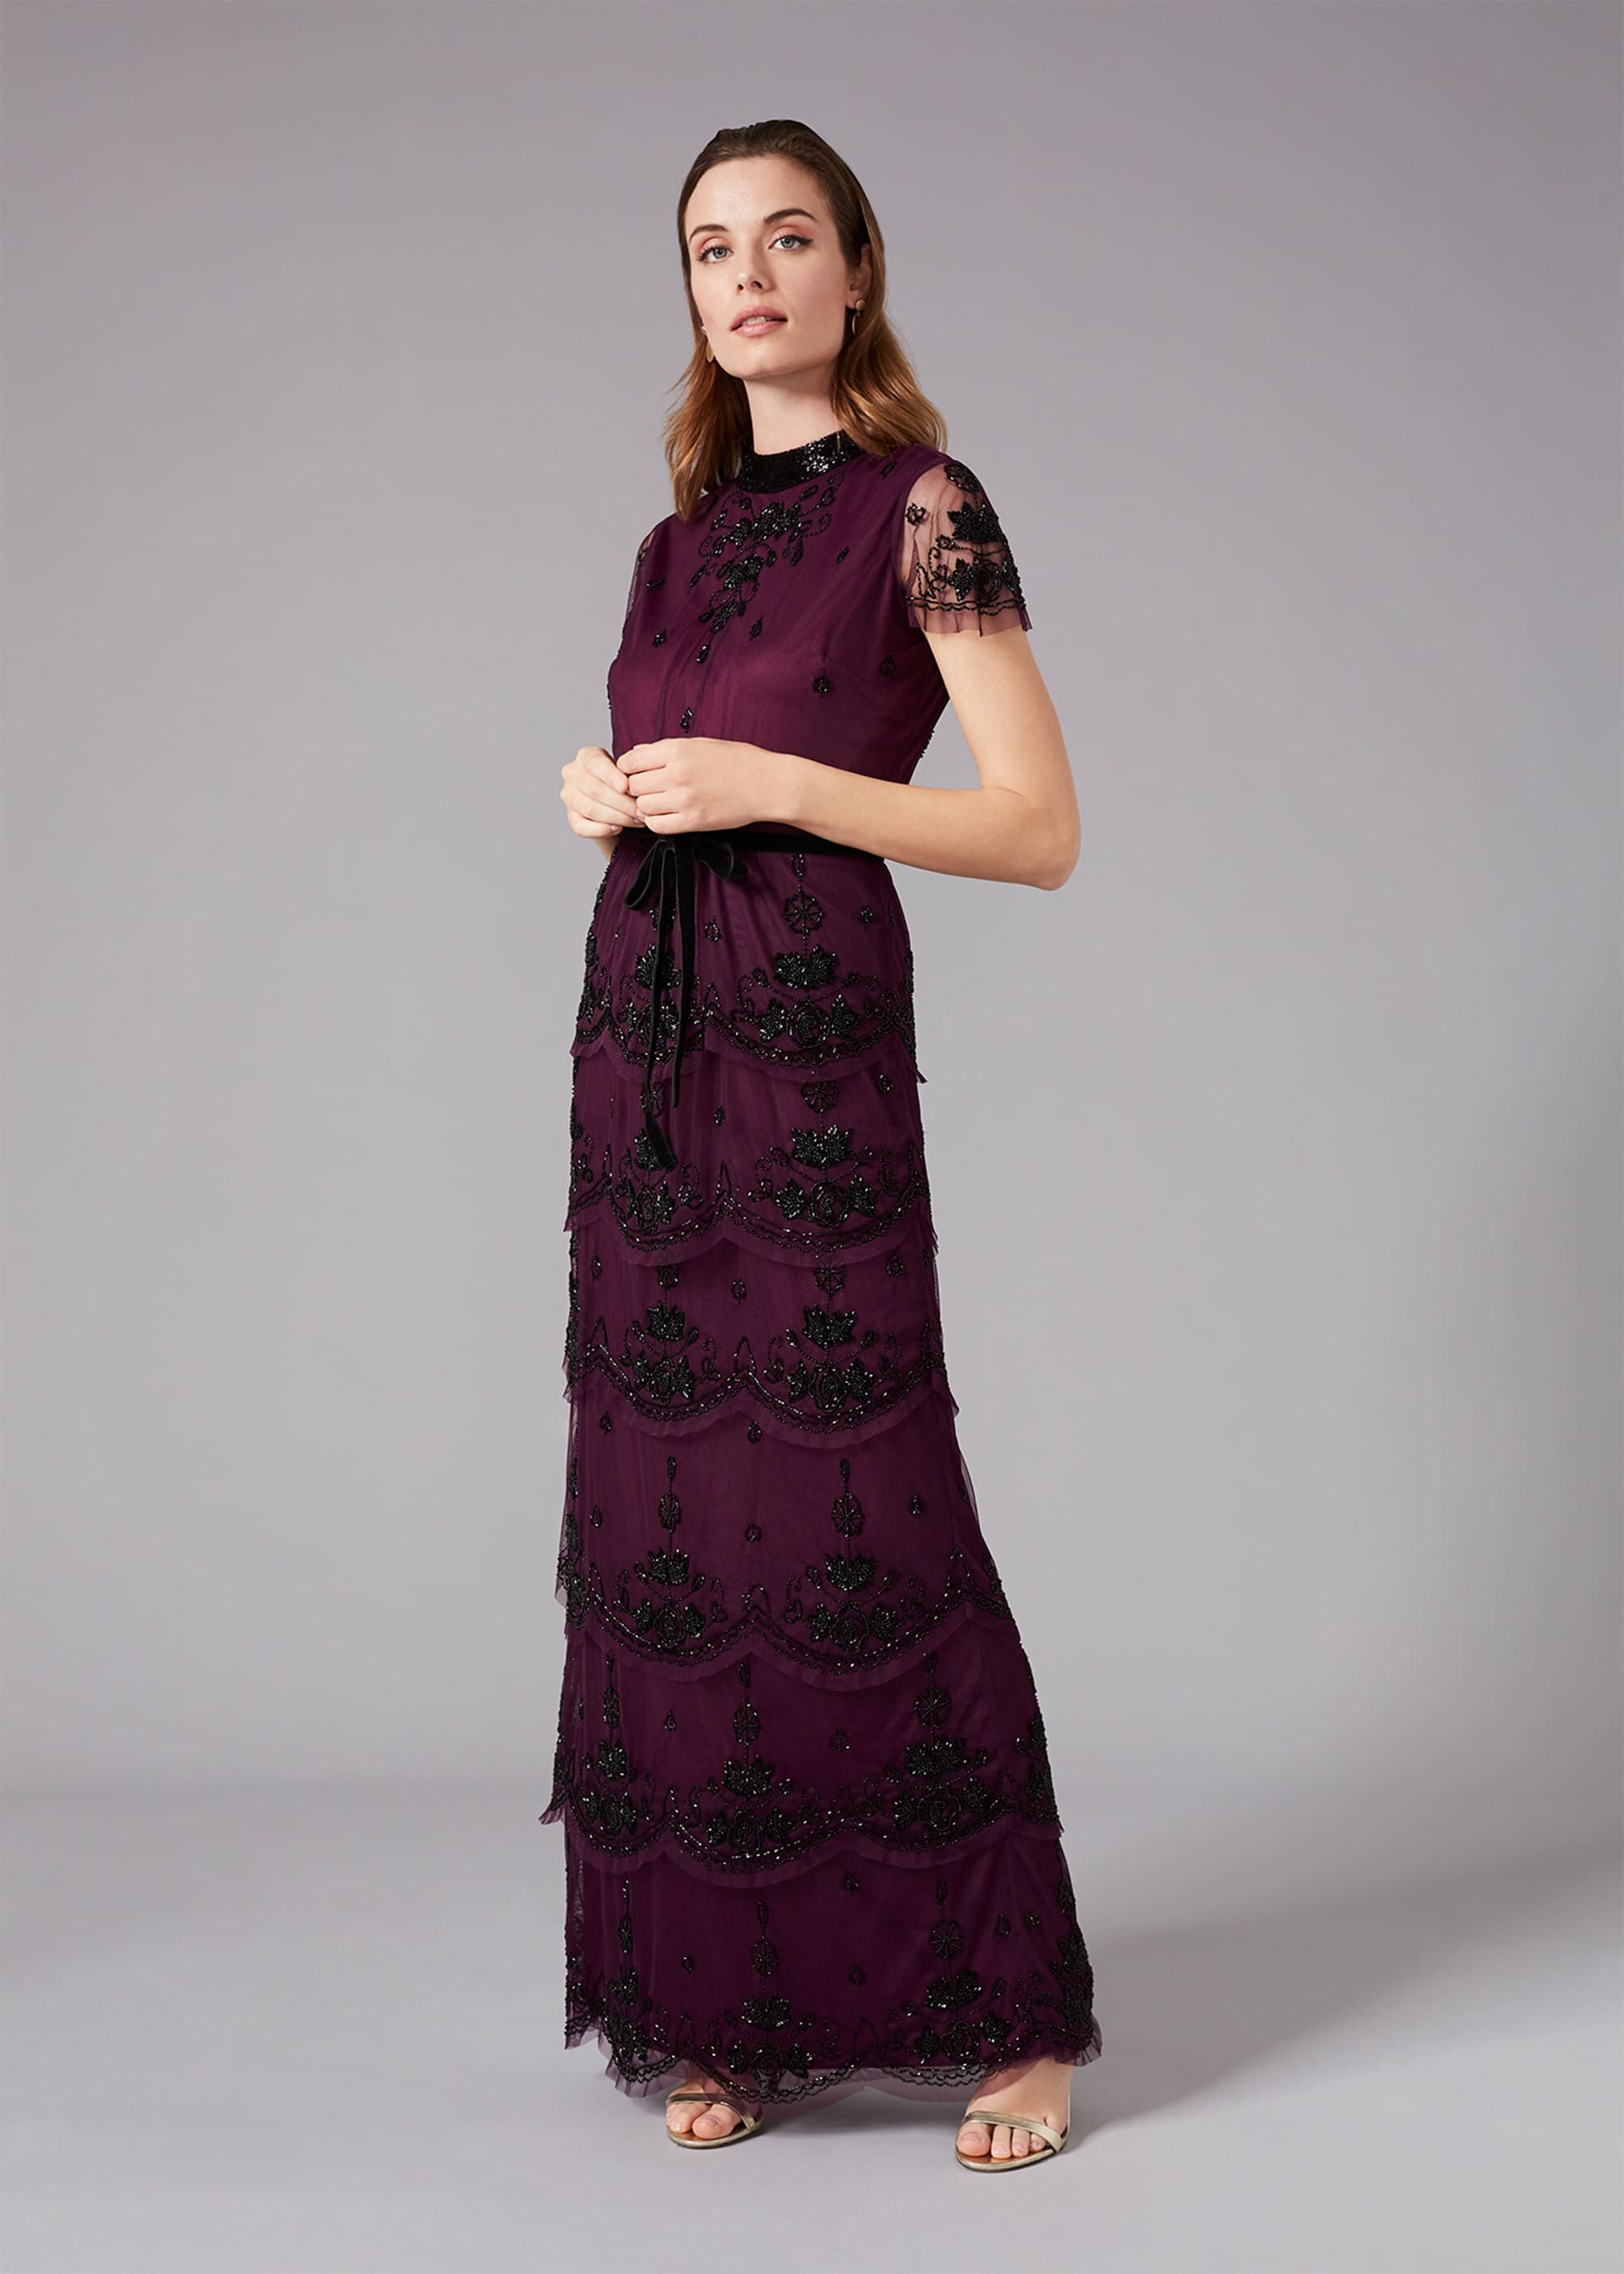 Phase Eight Roberta Layered Maxi Dress, Purple, Maxi, Occasion Dress